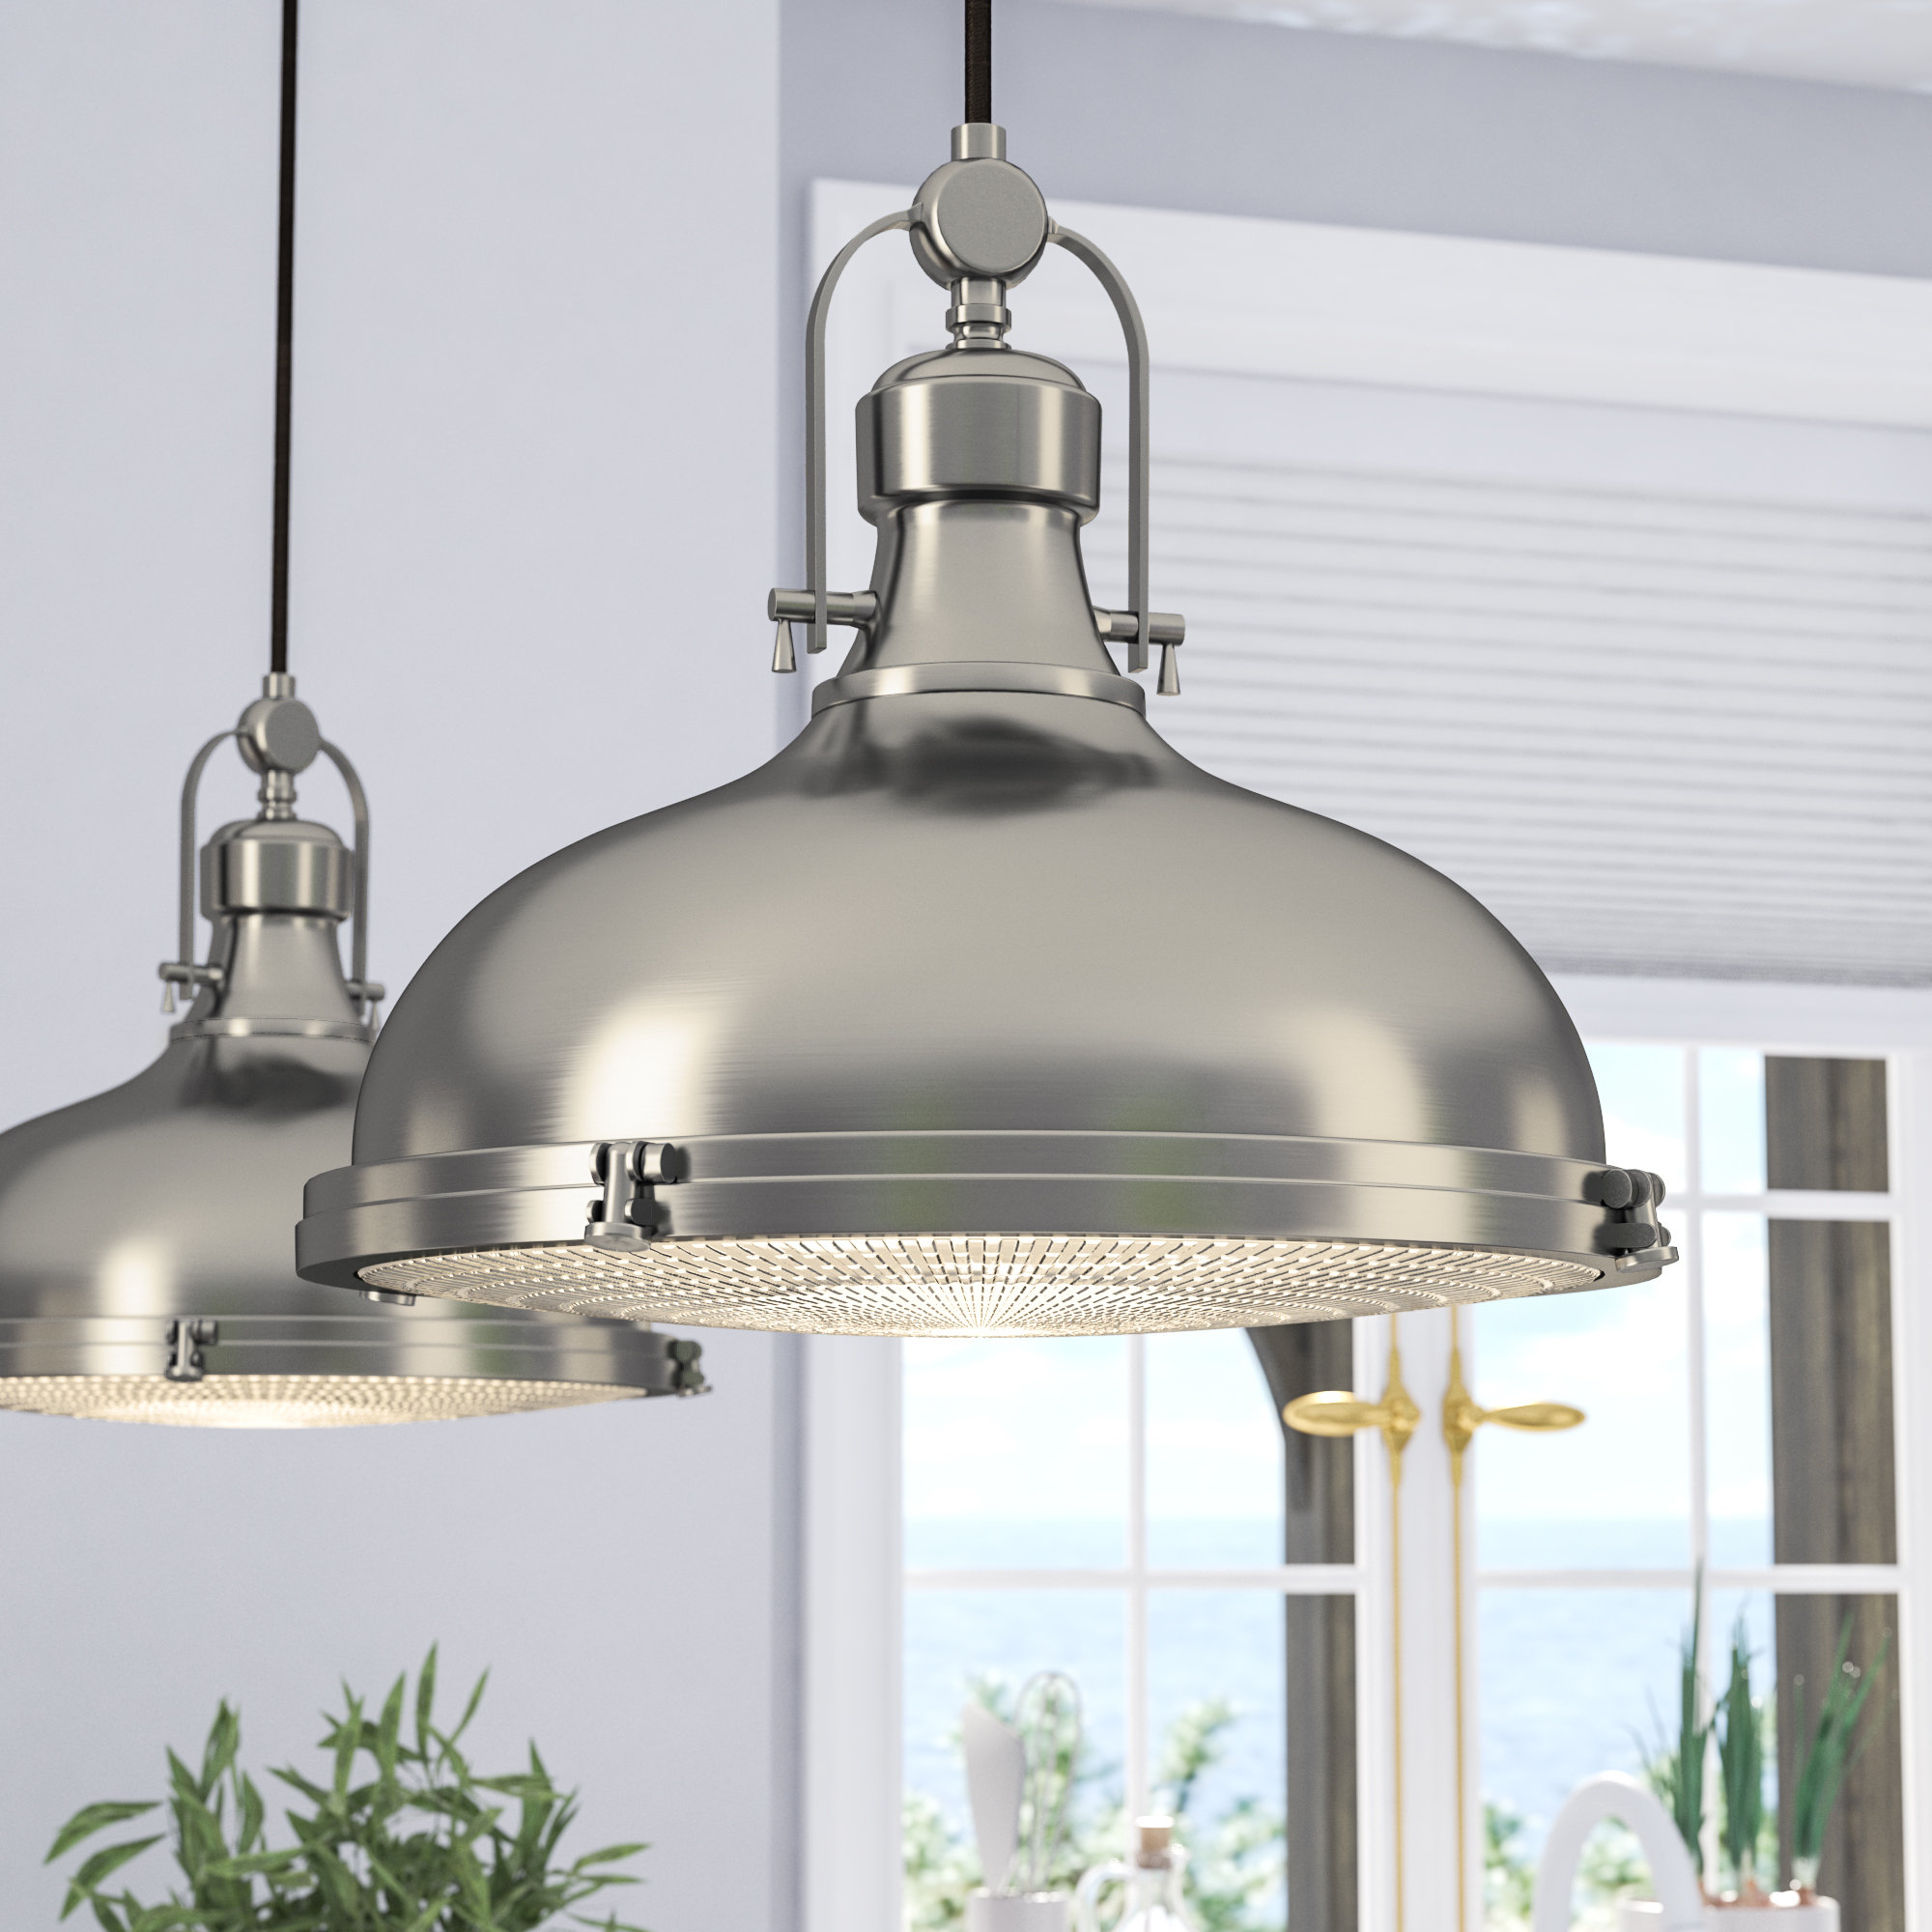 Dome Metal Pendant Lighting You'll Love In  (View 5 of 25)